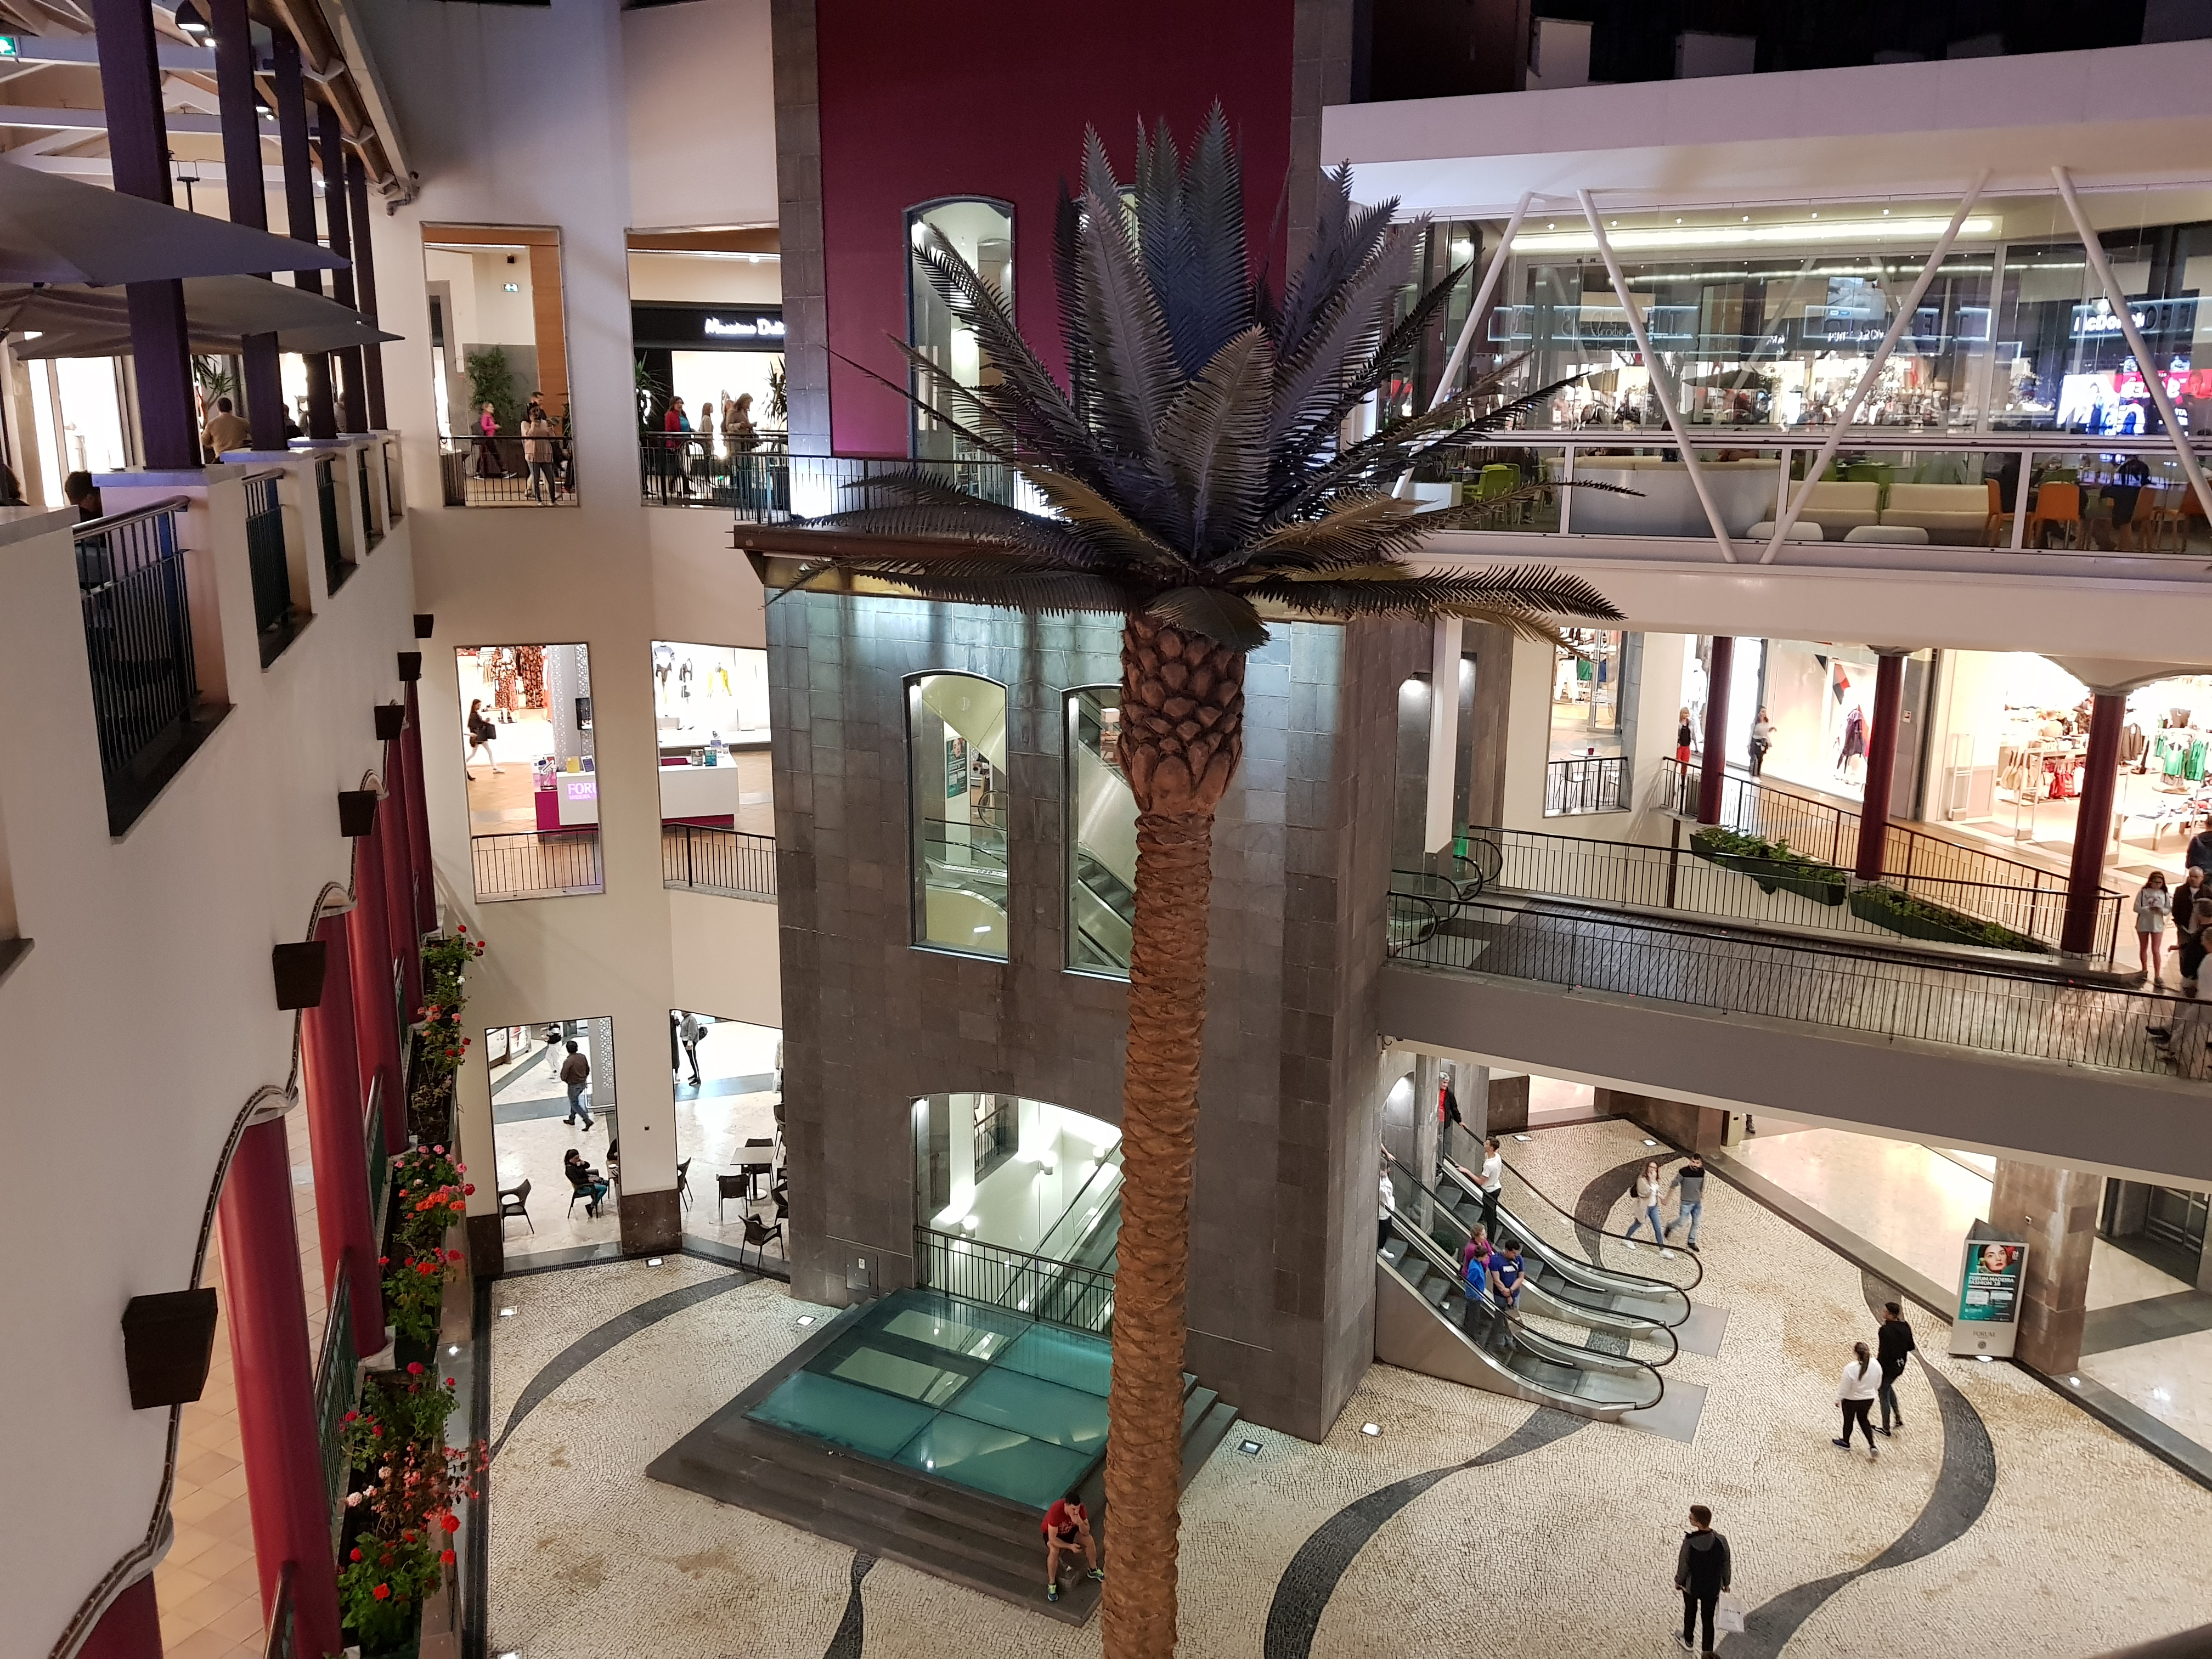 The Forum shopping